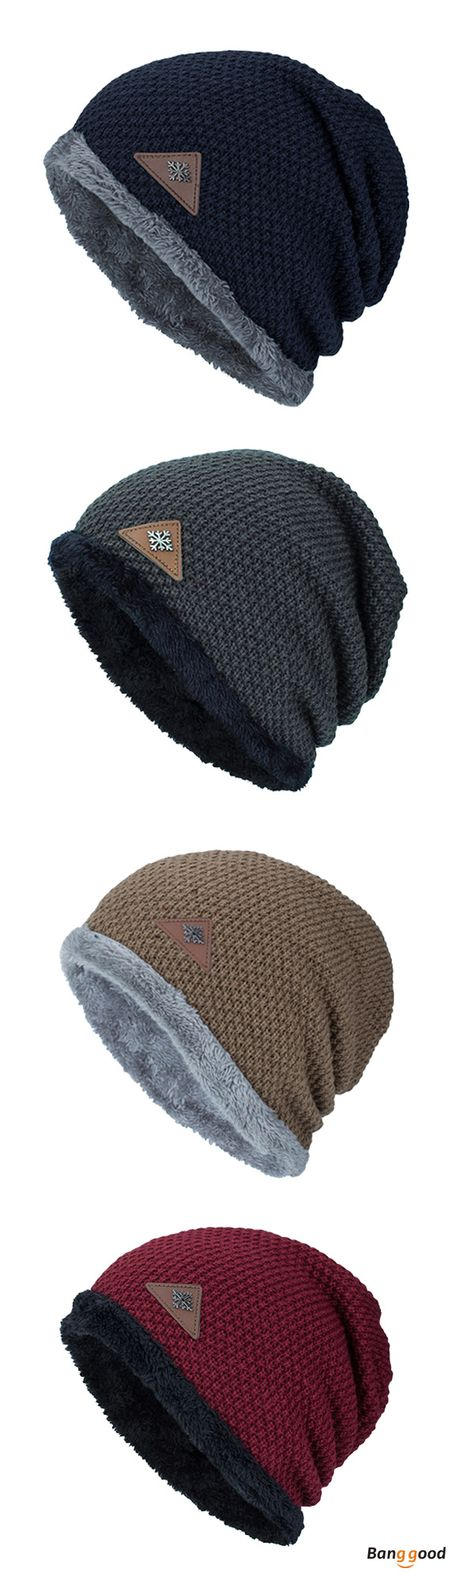 Stretchy Cuff Beanie Hat Black Skull Caps National Coffee Day Winter Warm Knit Hats